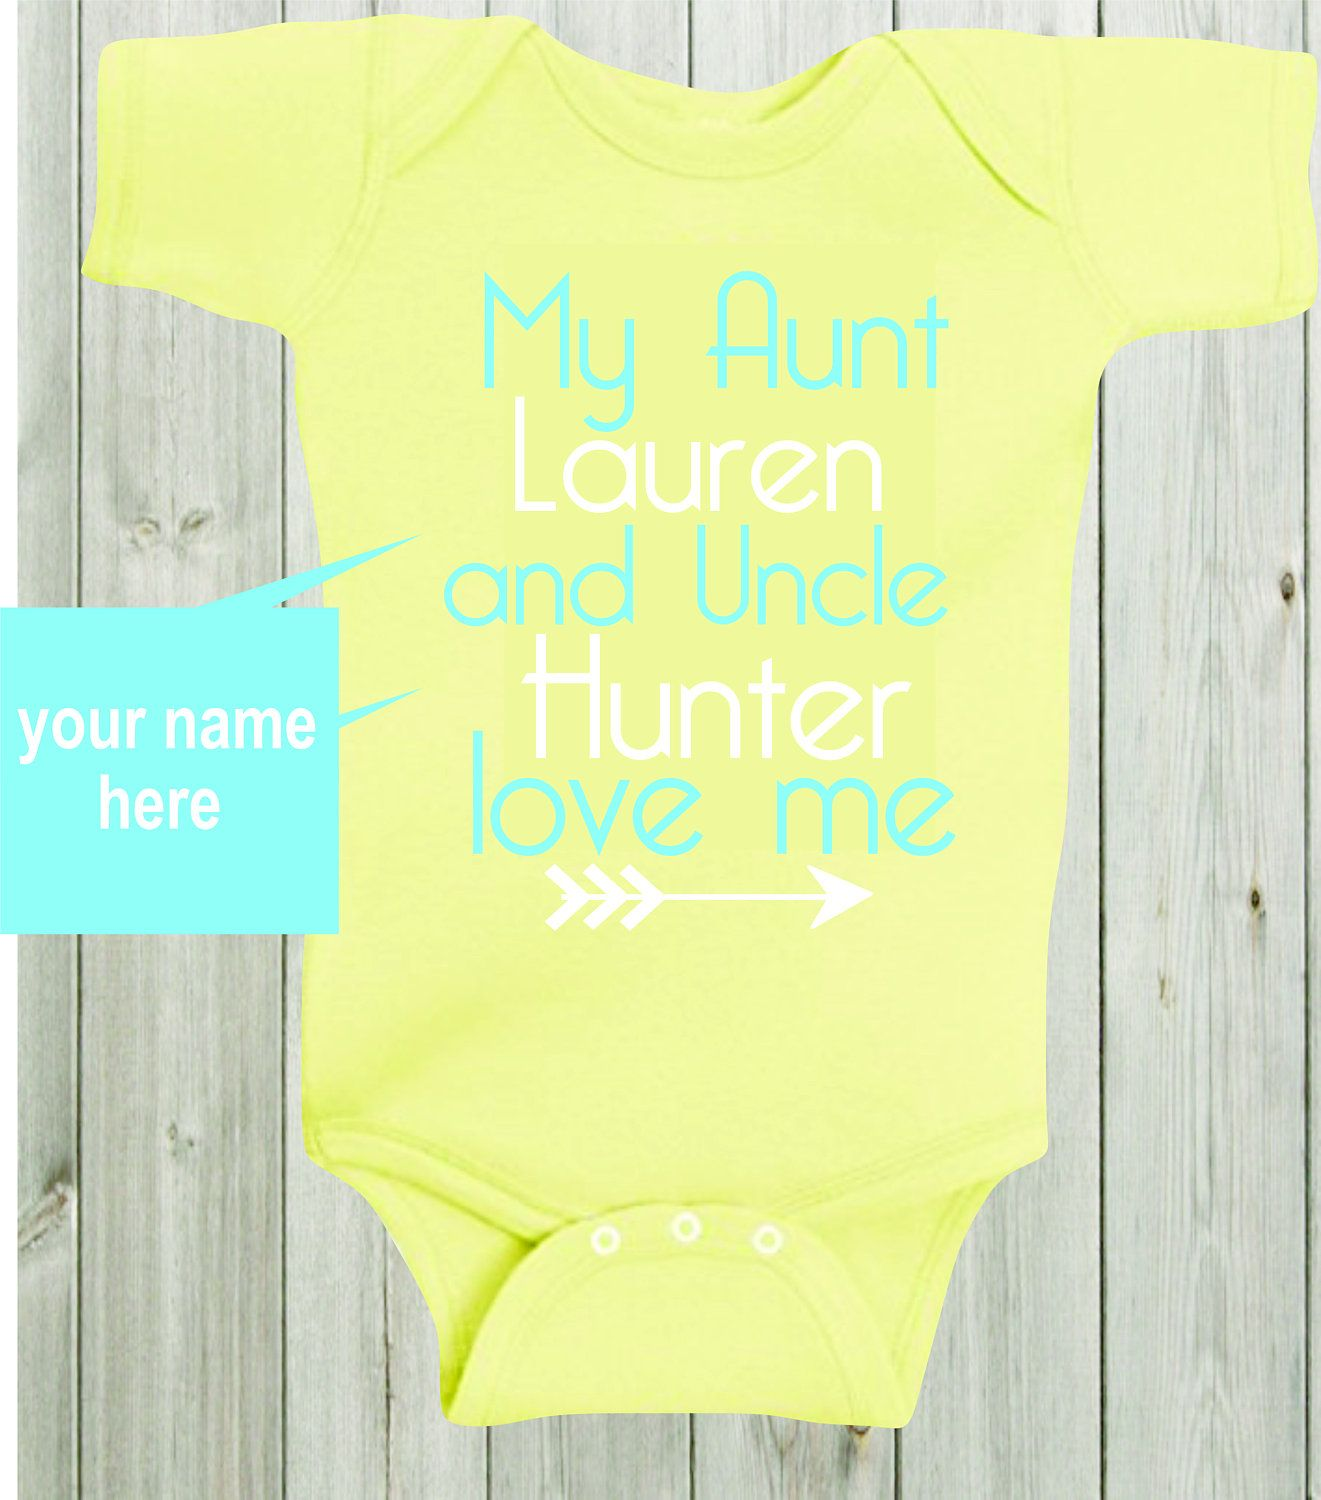 My aunt and uncle love me baby shirt custom shirt personalized baby my aunt and uncle love me baby shirt custom shirt personalized baby bodysuit gender neutral baby negle Image collections